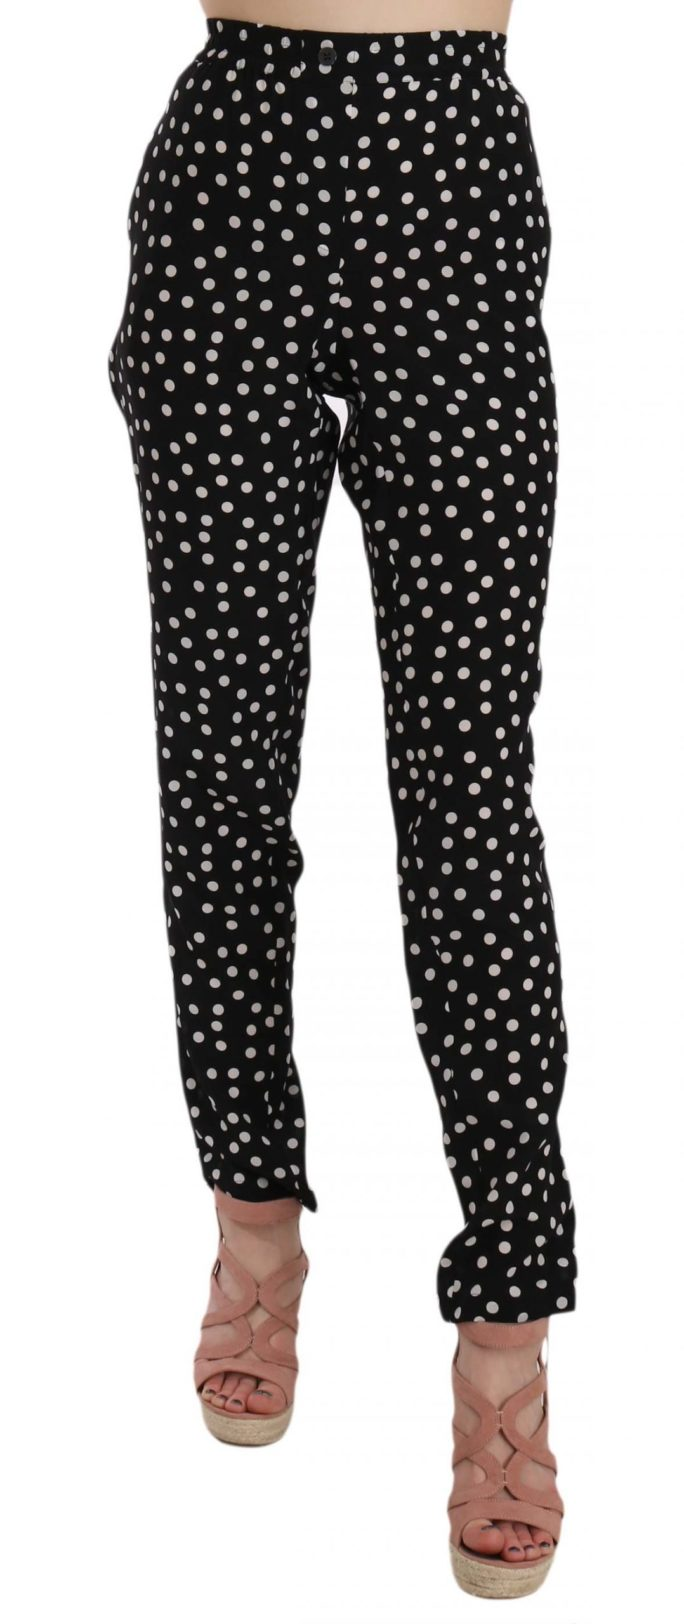 658452 Silk Slim Leg Black Polka Dot Print Pants.jpg